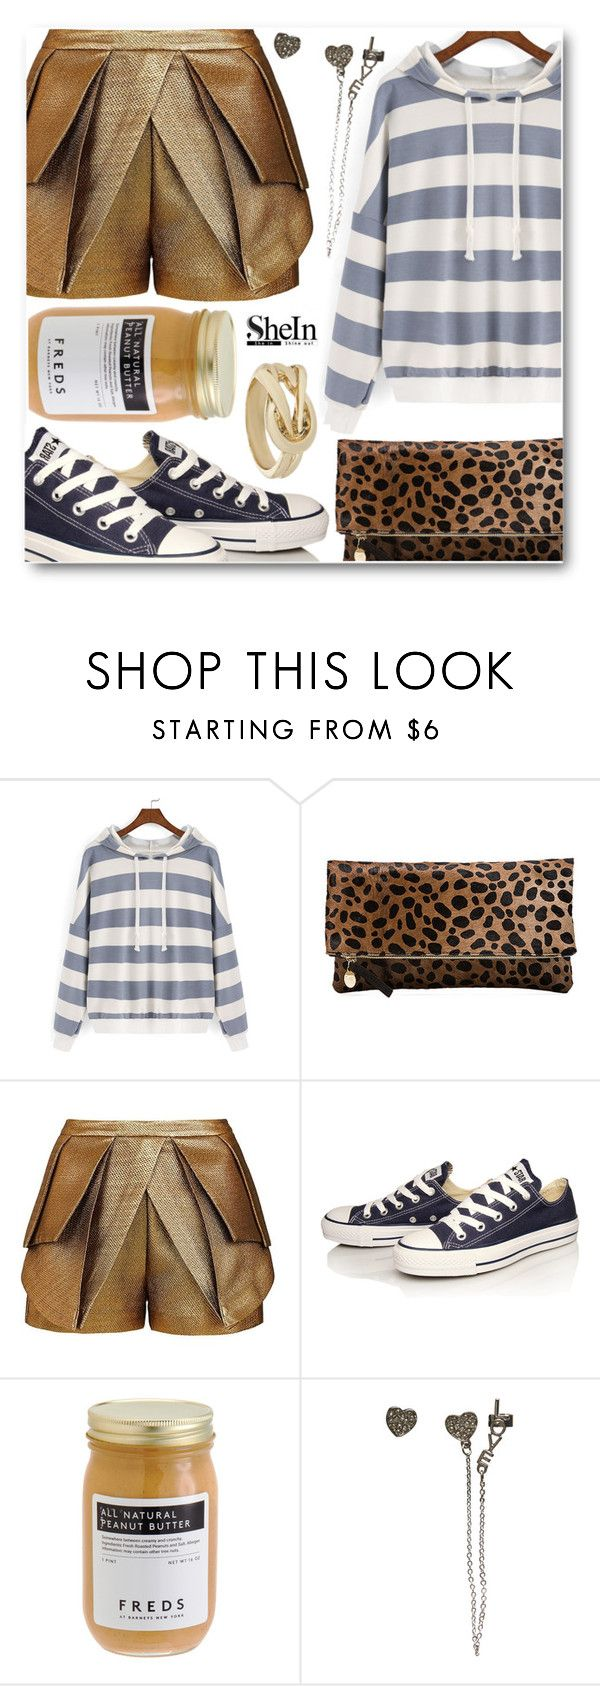 """""""War Zone."""" by eclectic-chic ❤ liked on Polyvore featuring Clare V., sass & bide, Converse, FREDS at Barneys New York, Wet Seal, Wallis, stripes, leopard, converse and shein"""